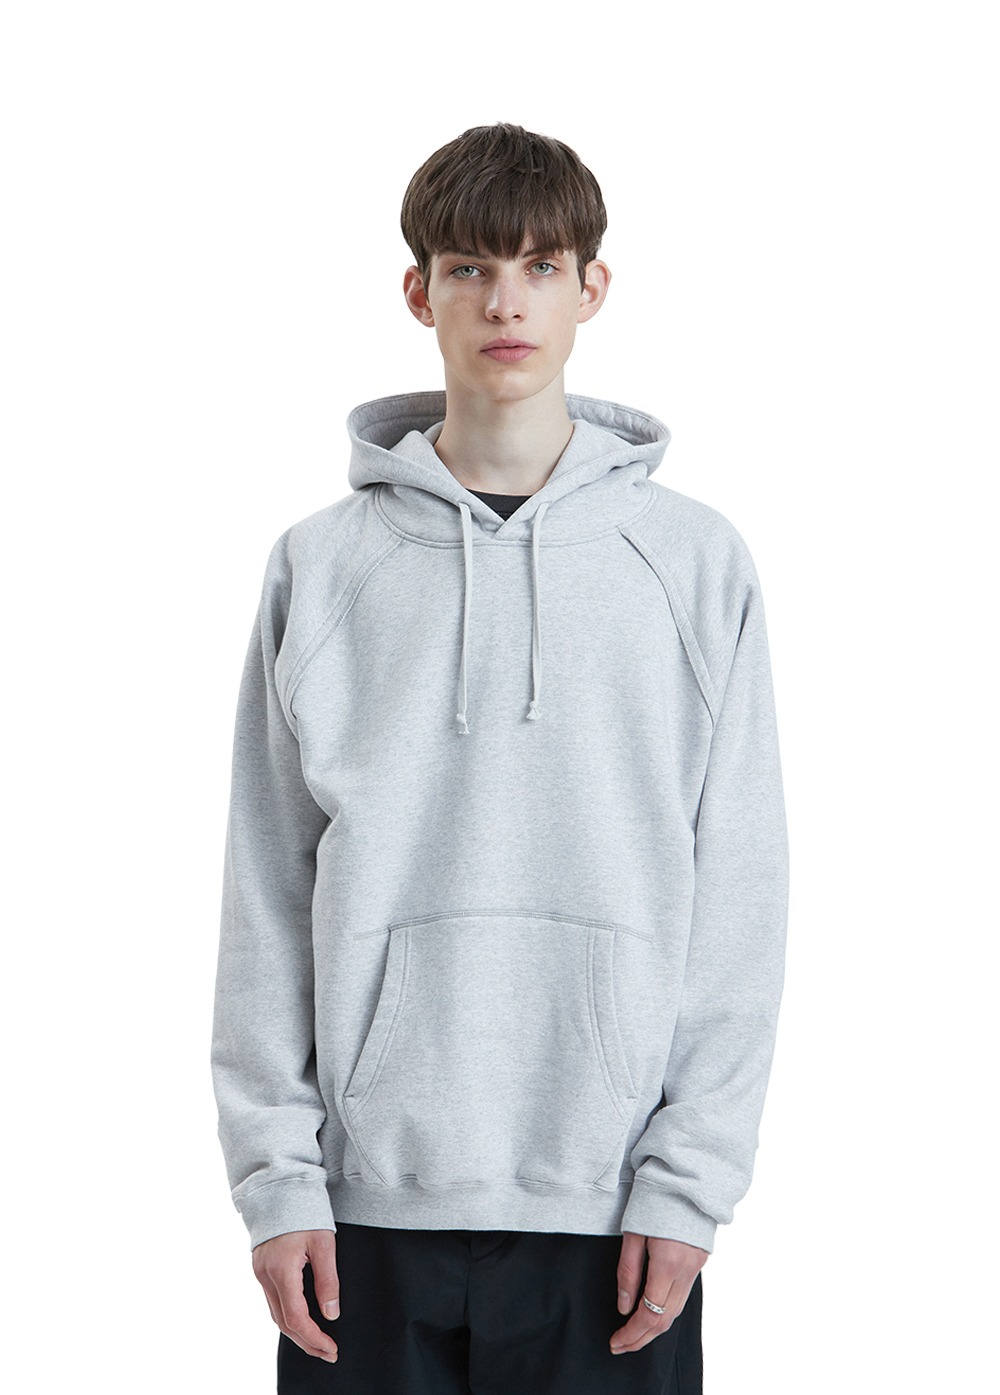 LIFUL SEAM OUT RAGLAN HOODIE melange gray